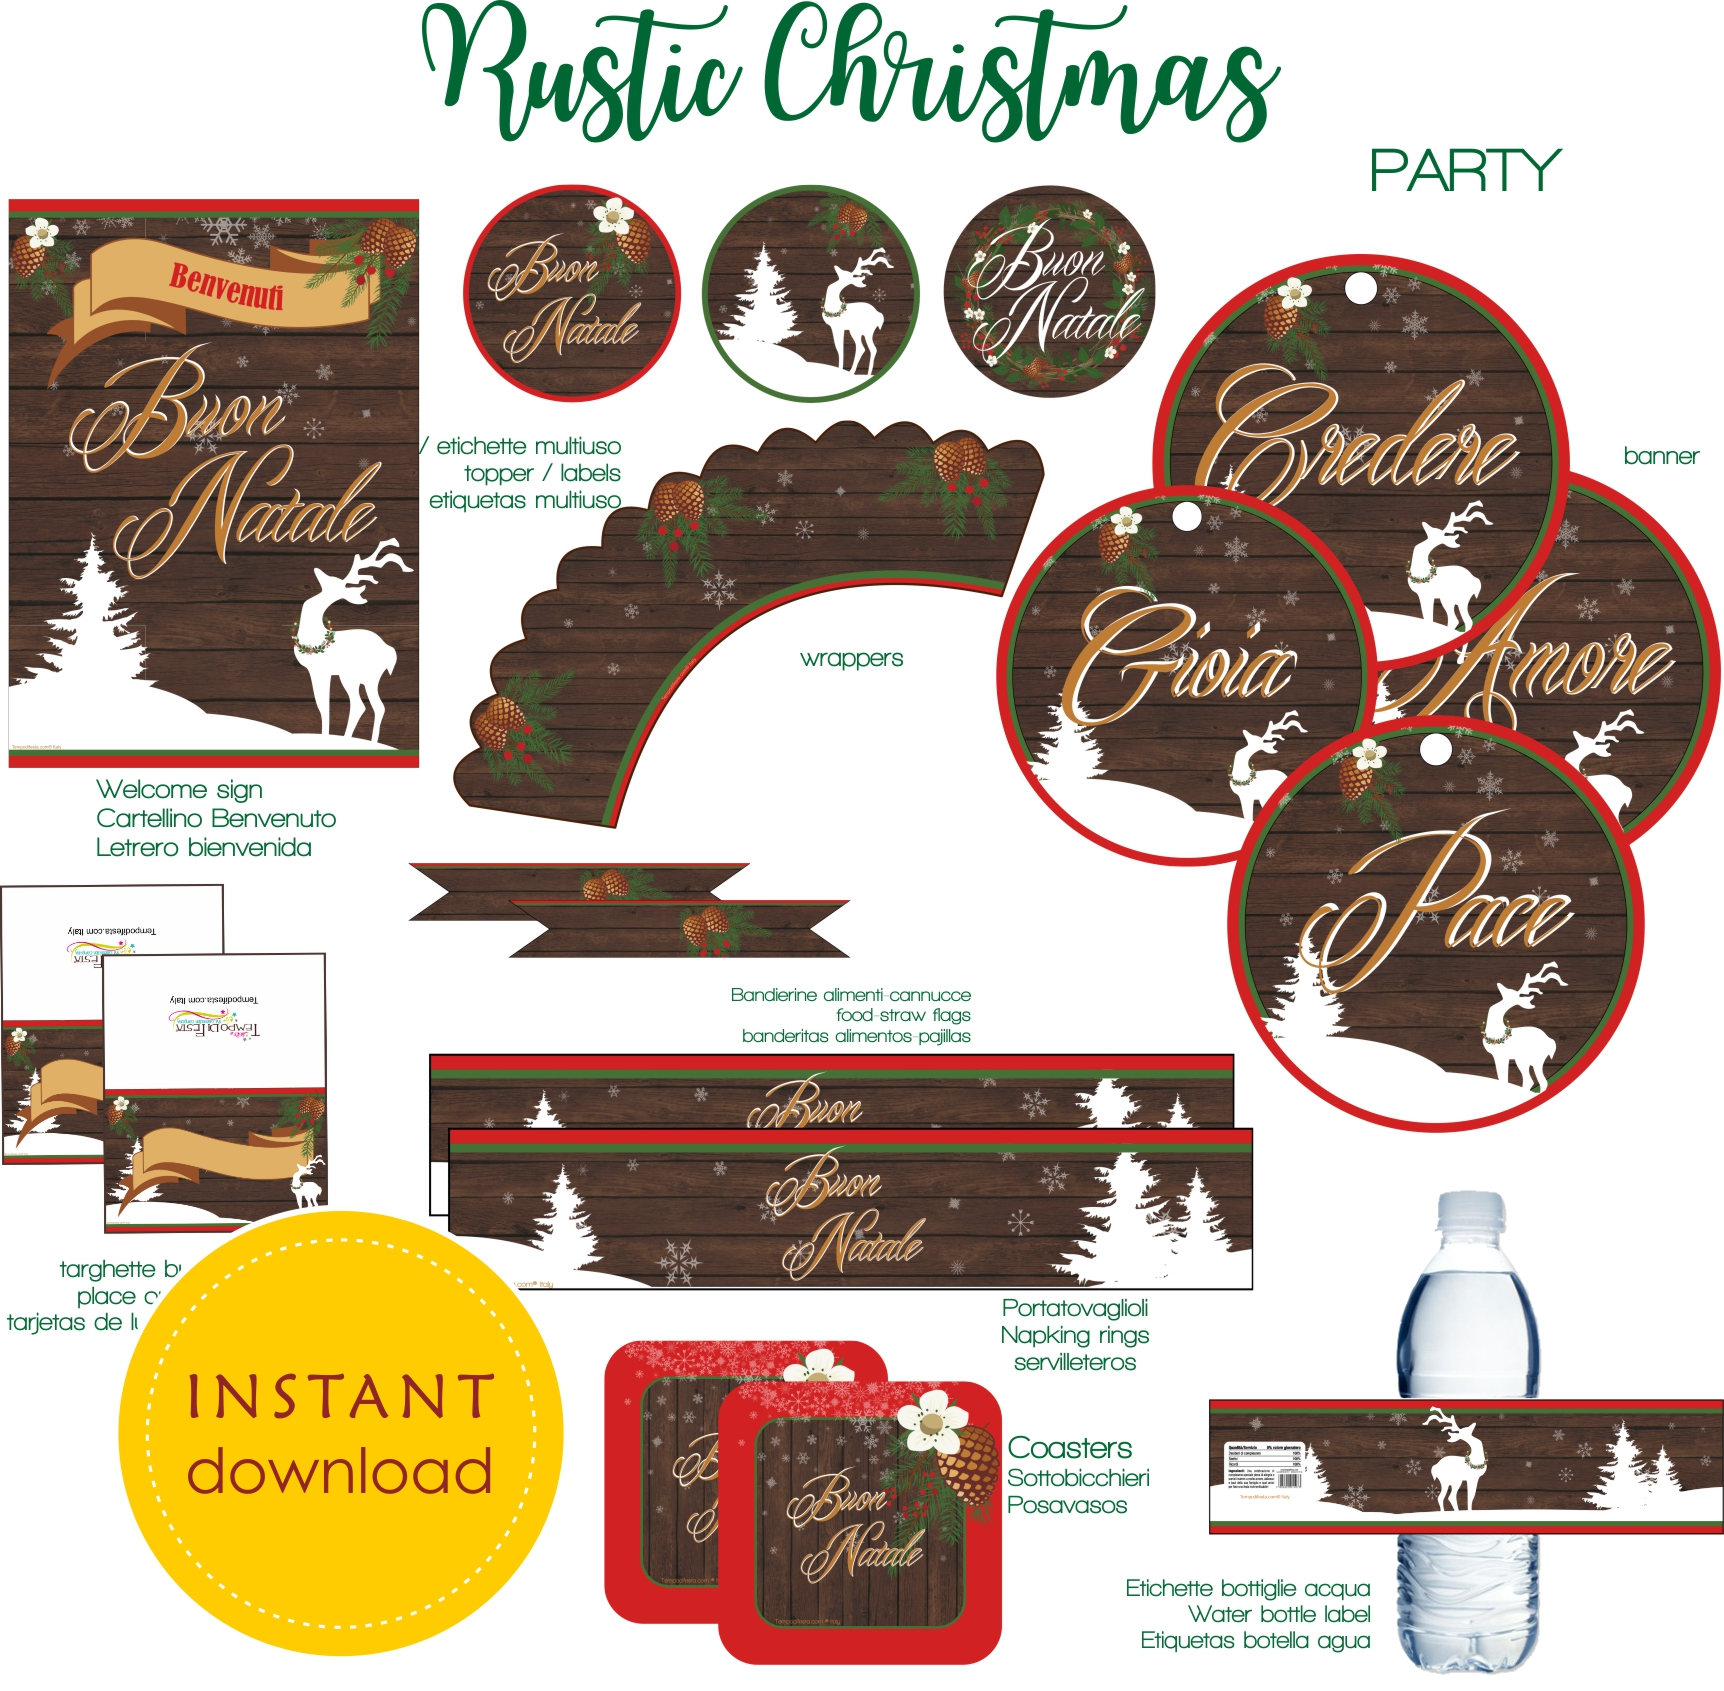 Christmas Rustic Party